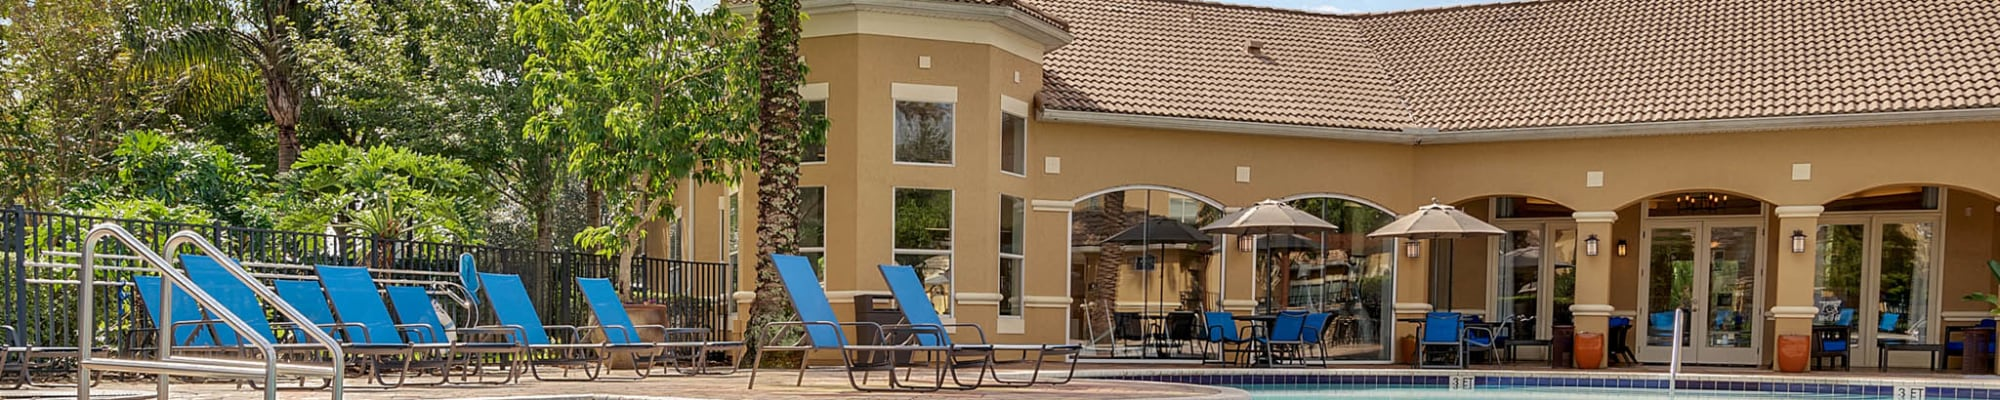 Privacy policy at Ansley Commons Apartment Homes in Ladson, South Carolina